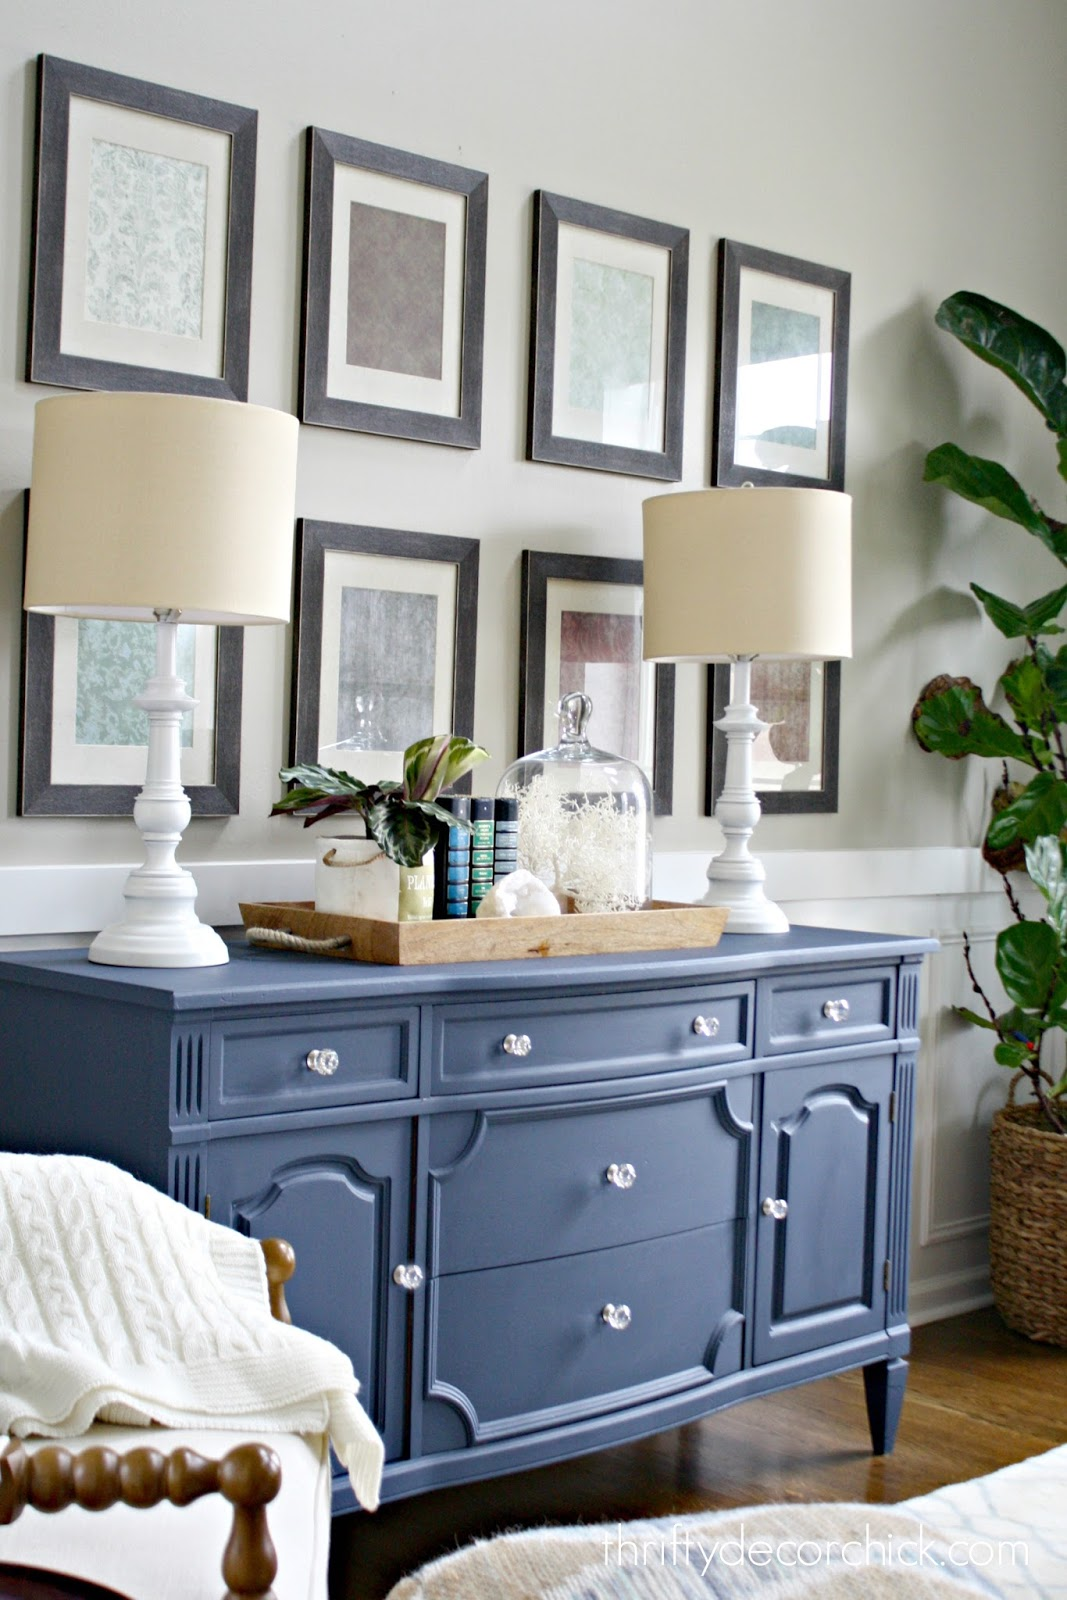 Dresser With Lamps And Tray